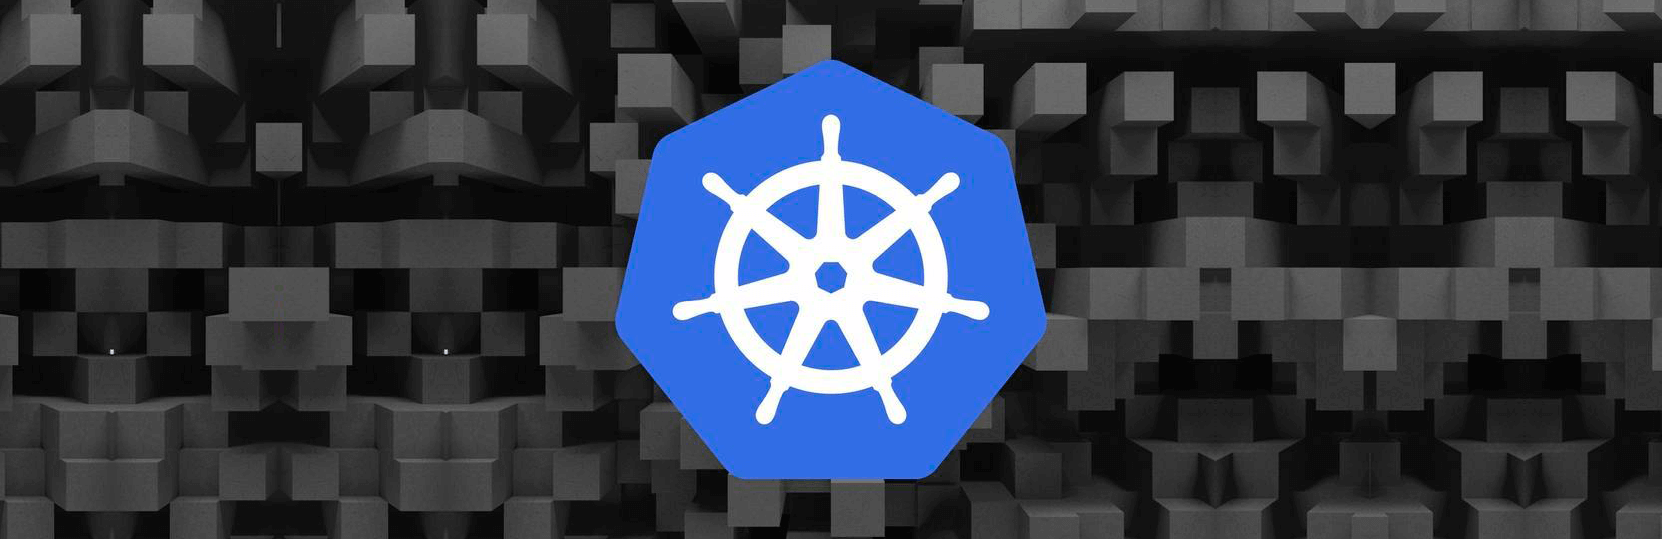 Kubernetes overview: everything to know about Kubernetes